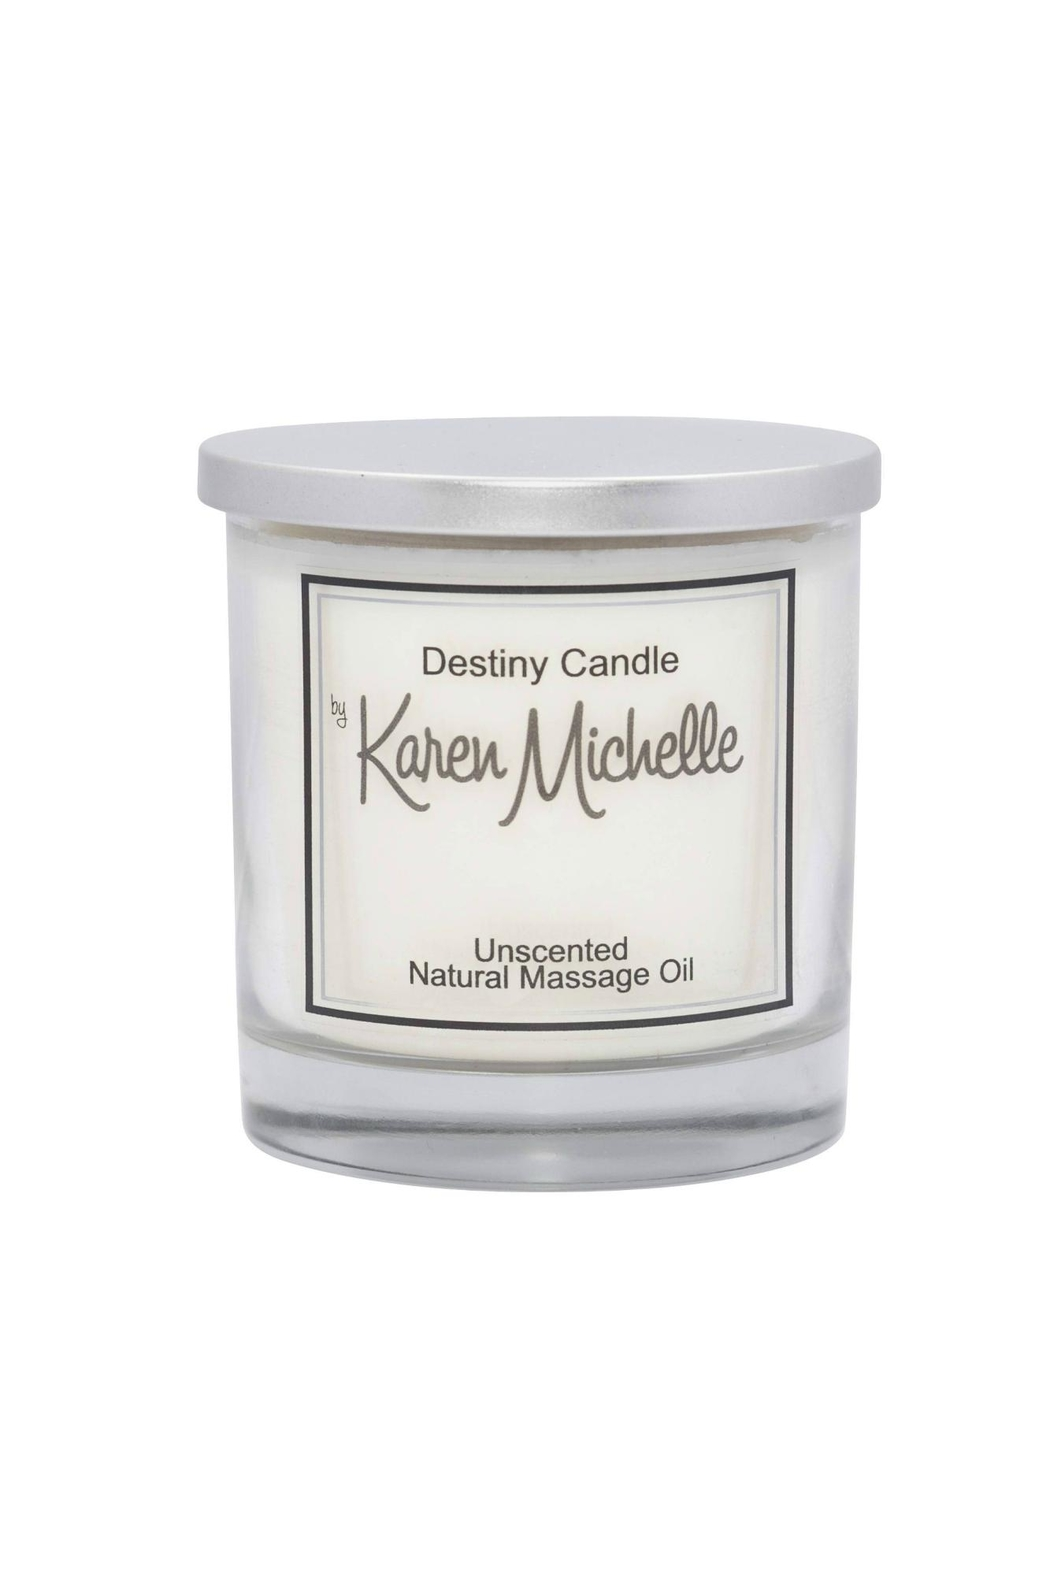 Destiny Candle by Karen Michelle Unscented Massage Oil Candle - Main Image